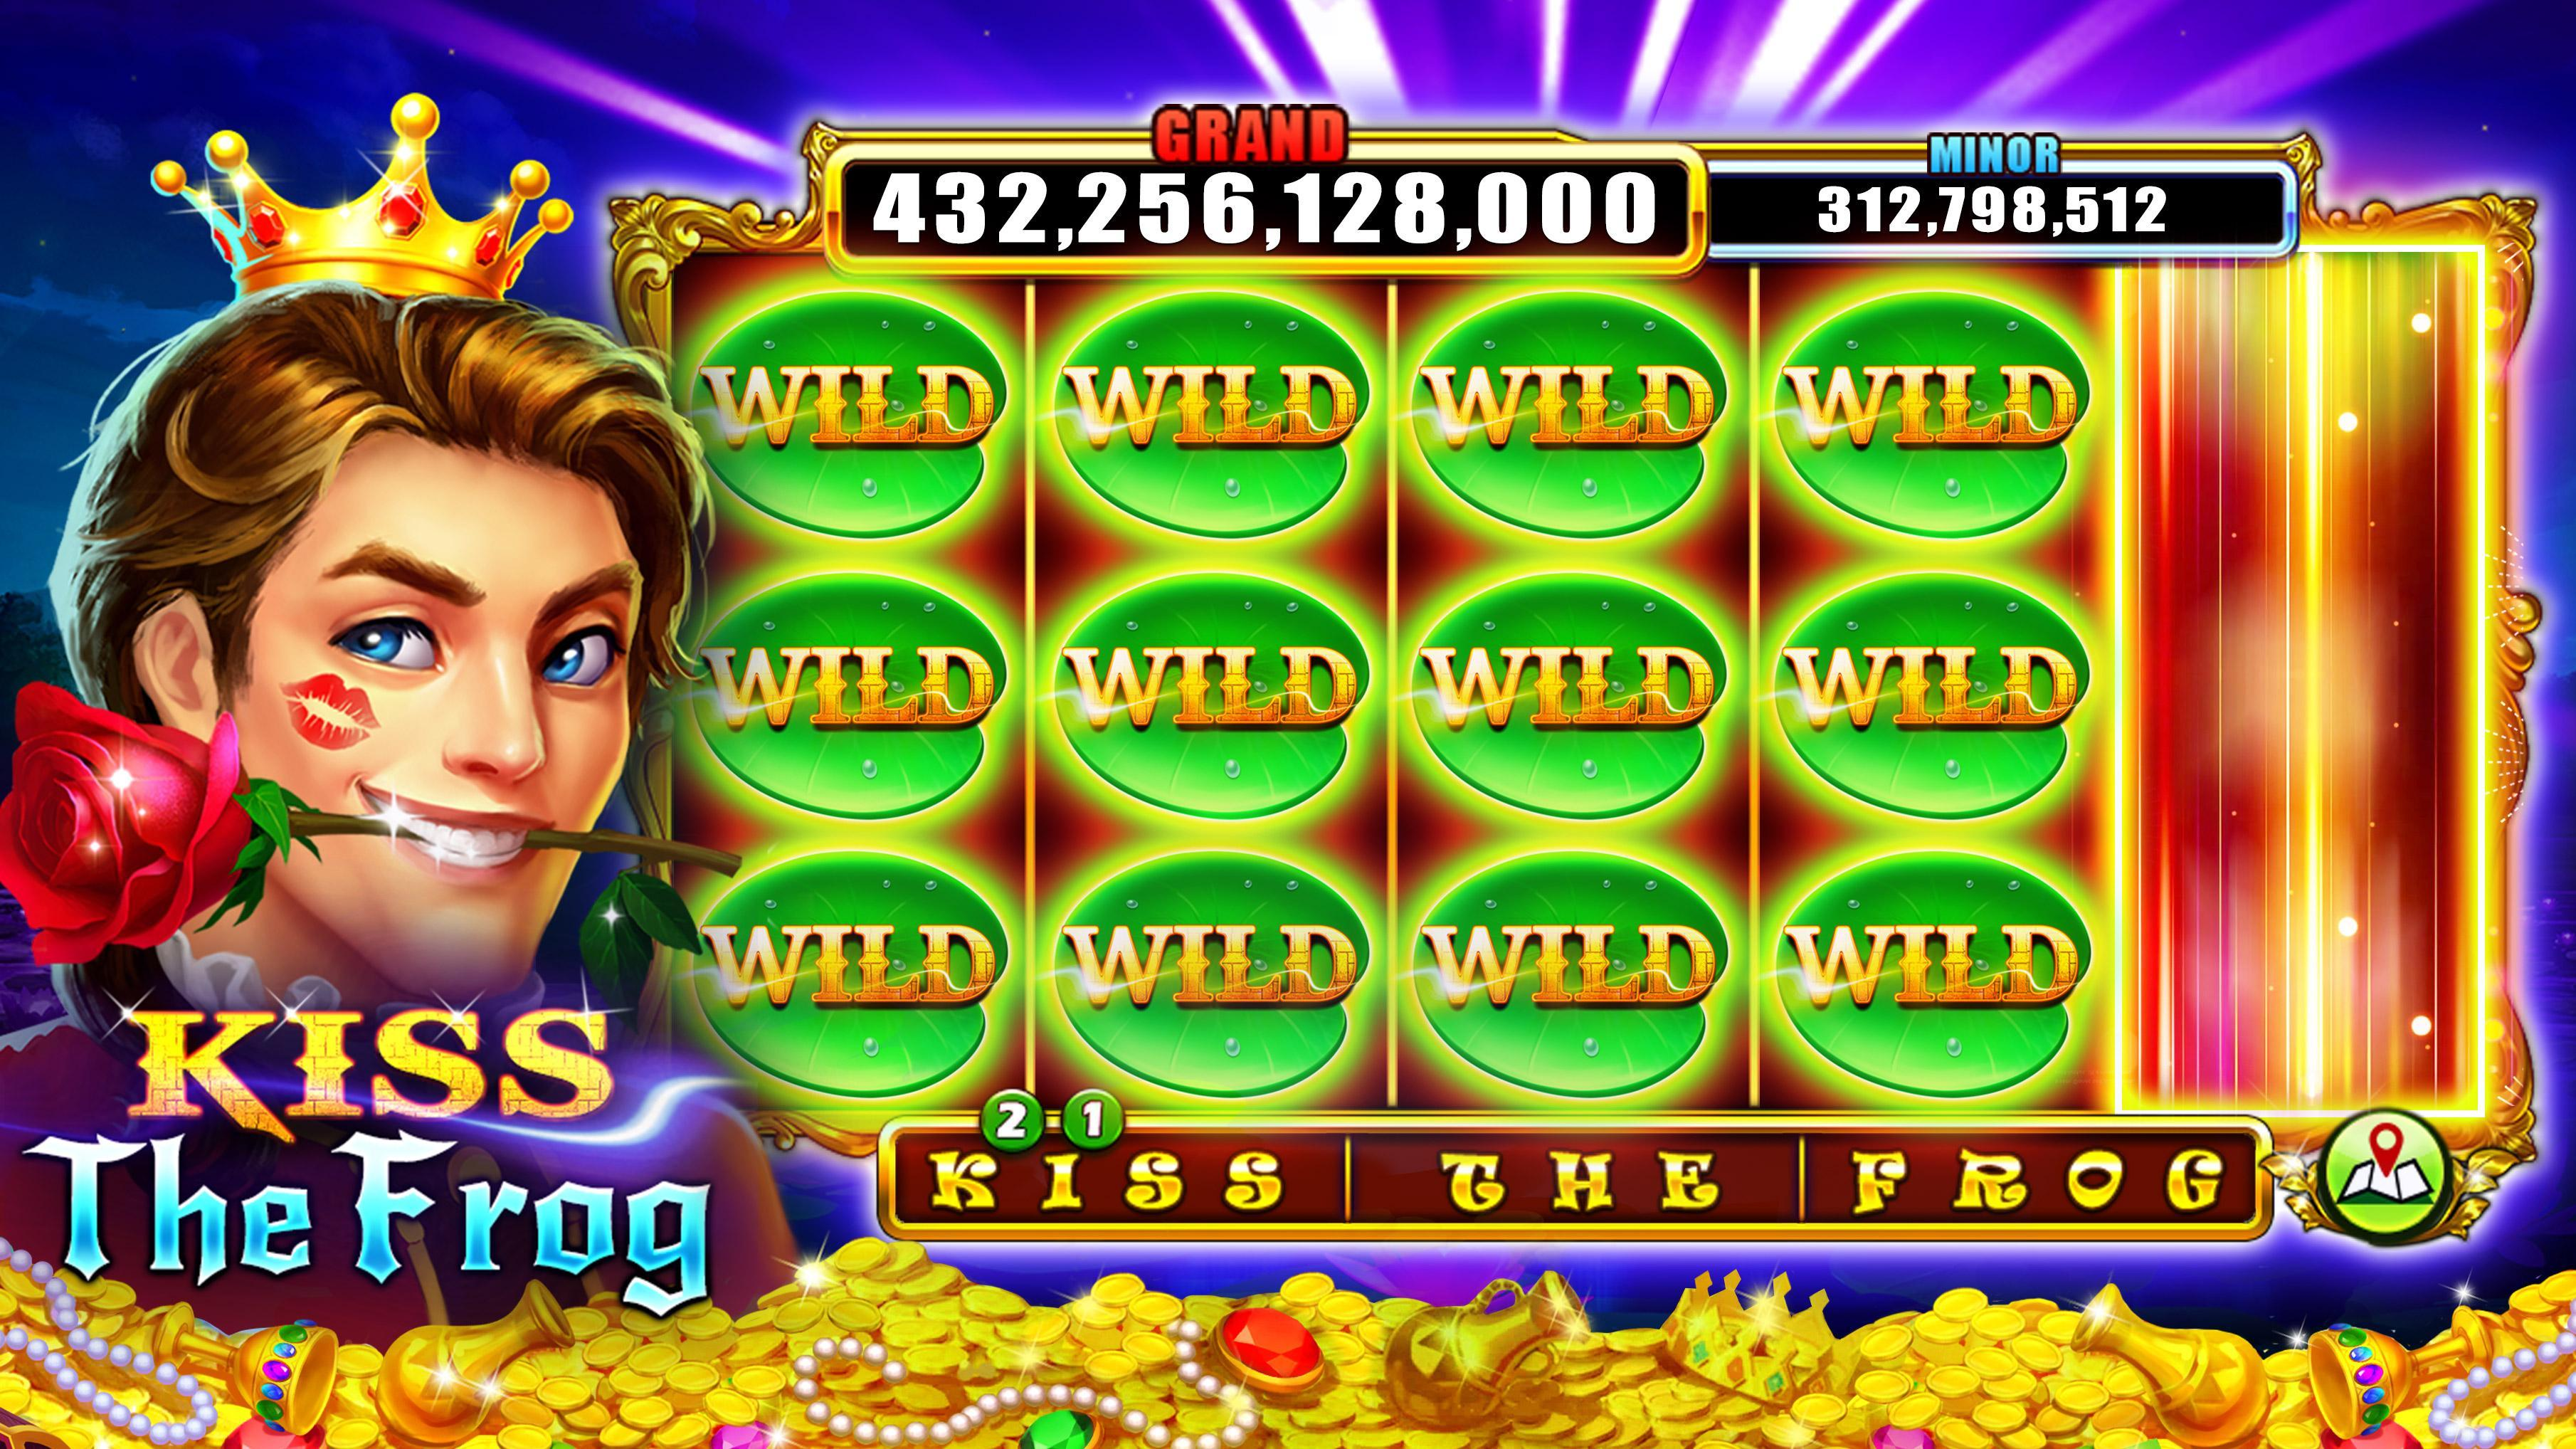 Vegas Friends - Casino Slots for Free 1.0.012 Screenshot 5